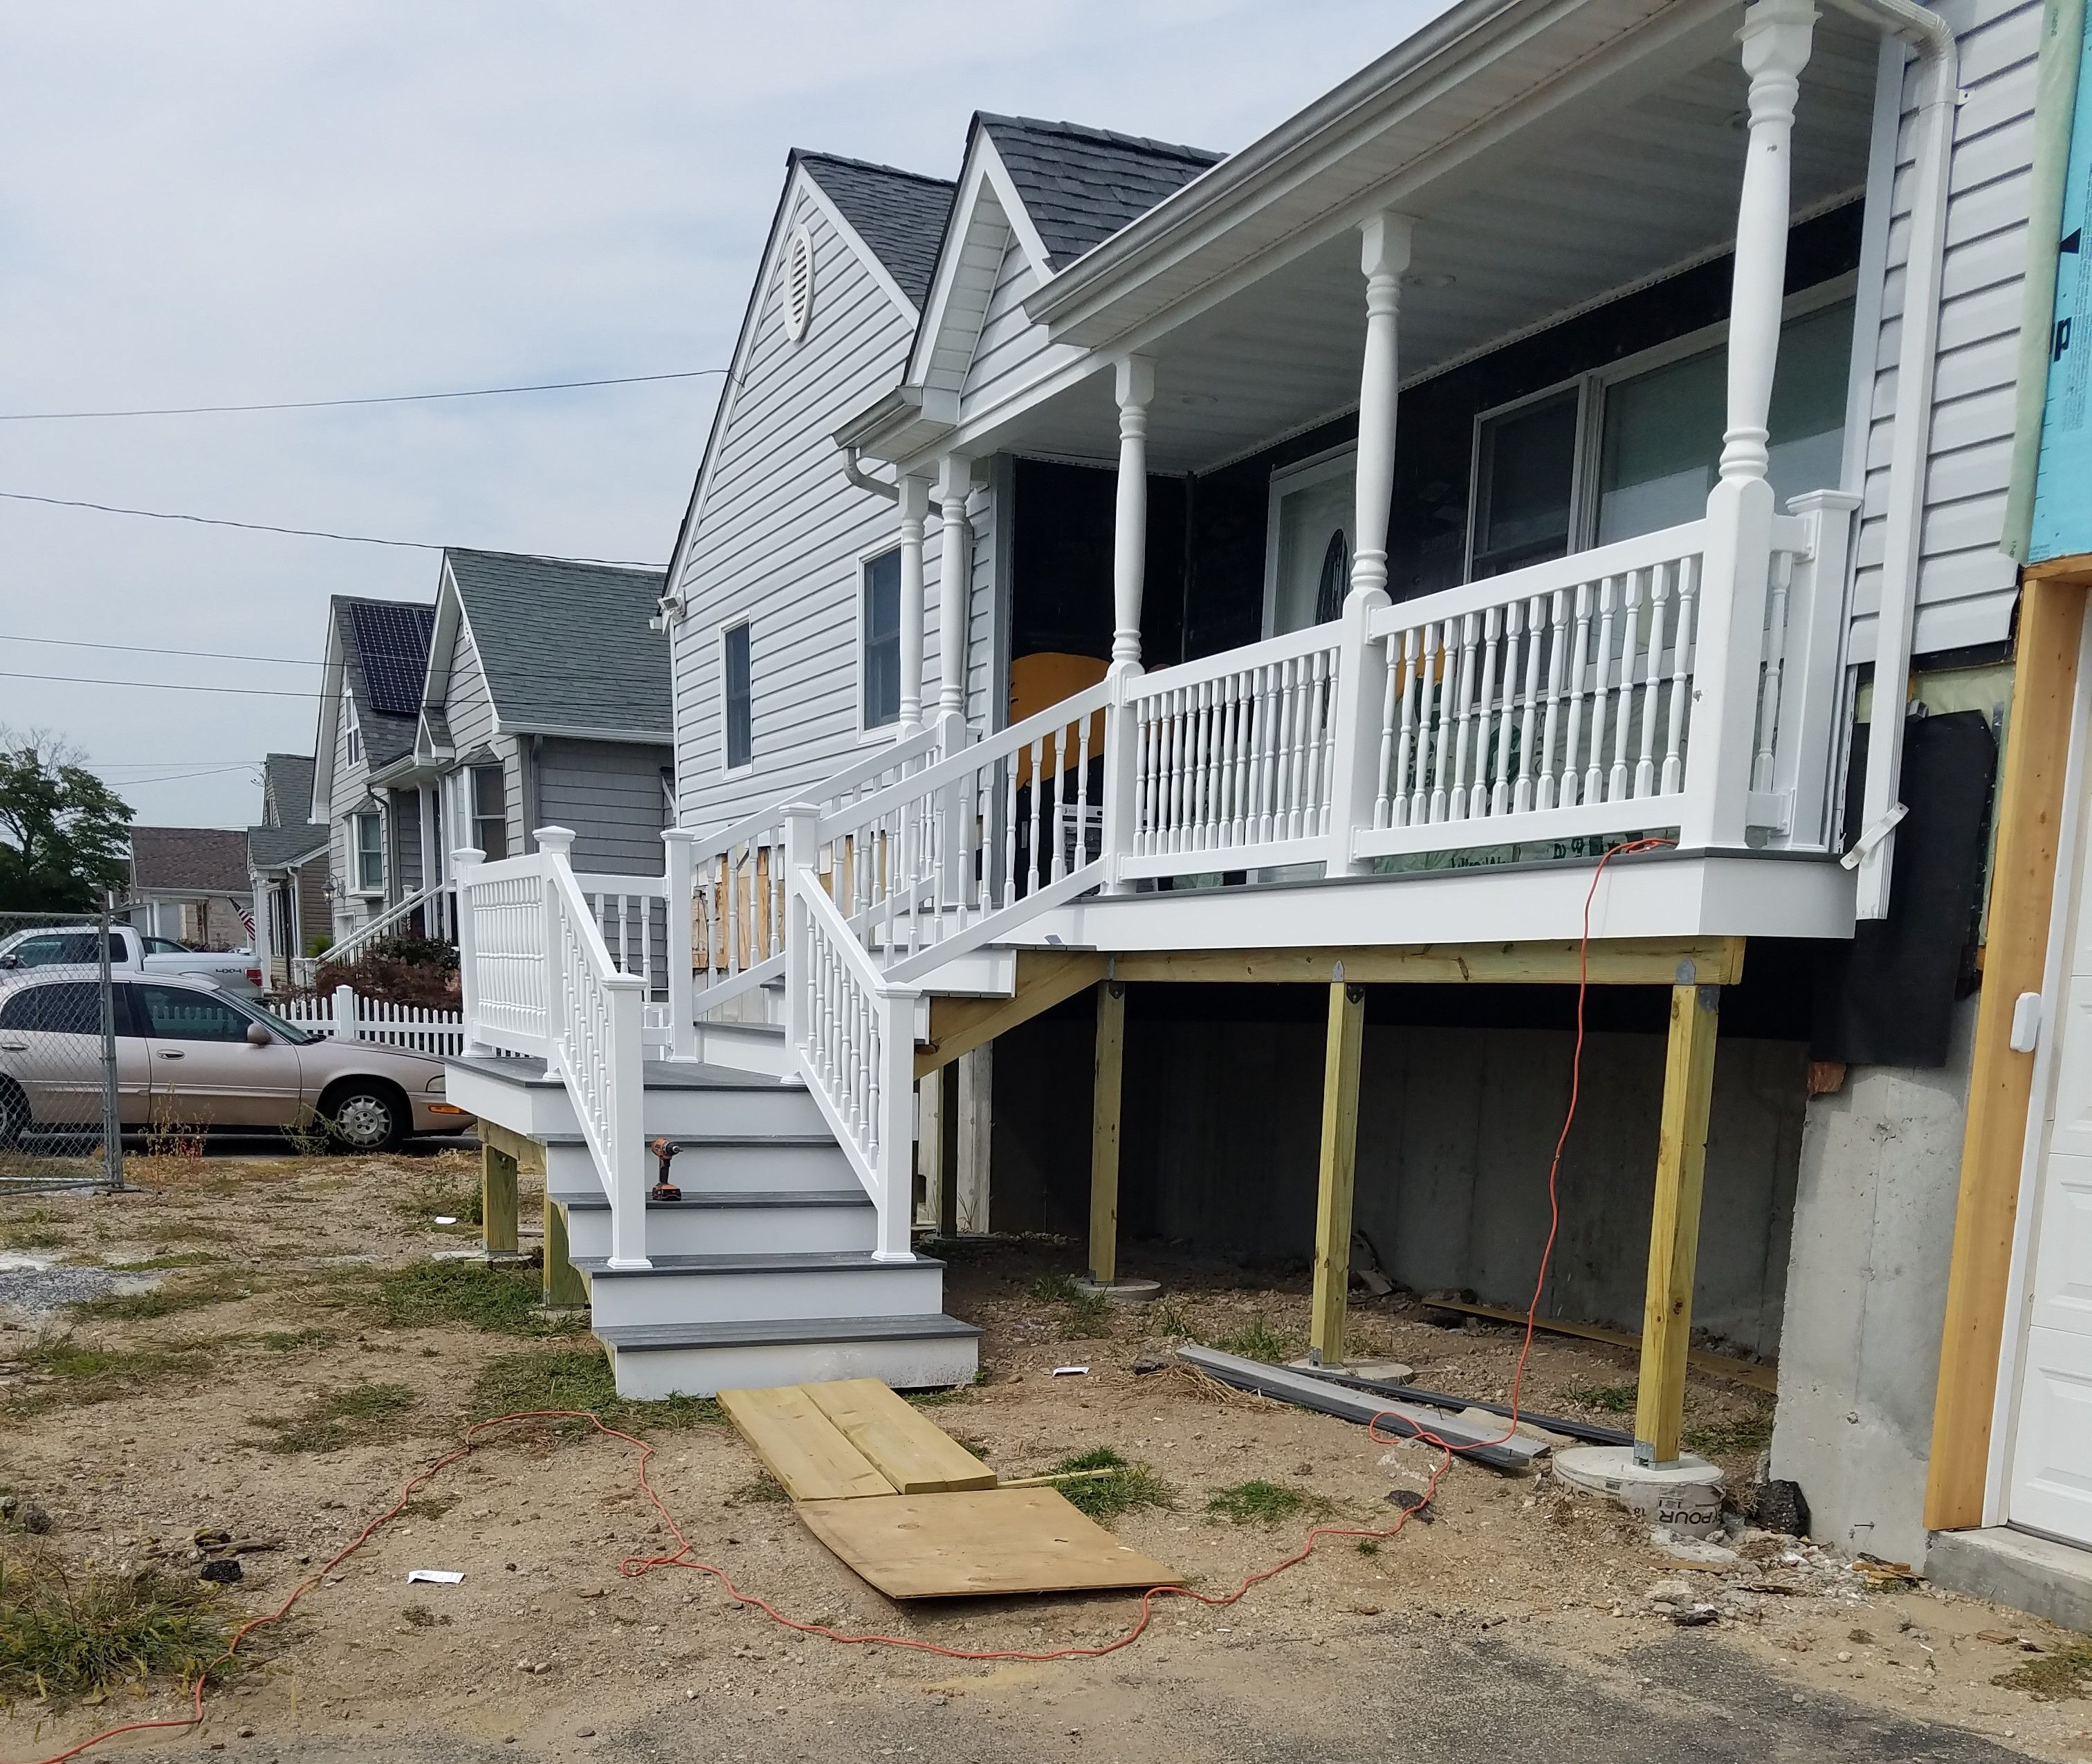 36 Spindle Pvc Railings On An Elevated Raised Home In Massapequa Ny Fabricated And Installed By Liberty Fence Raili With Images House Styles Installation Pvc Railing